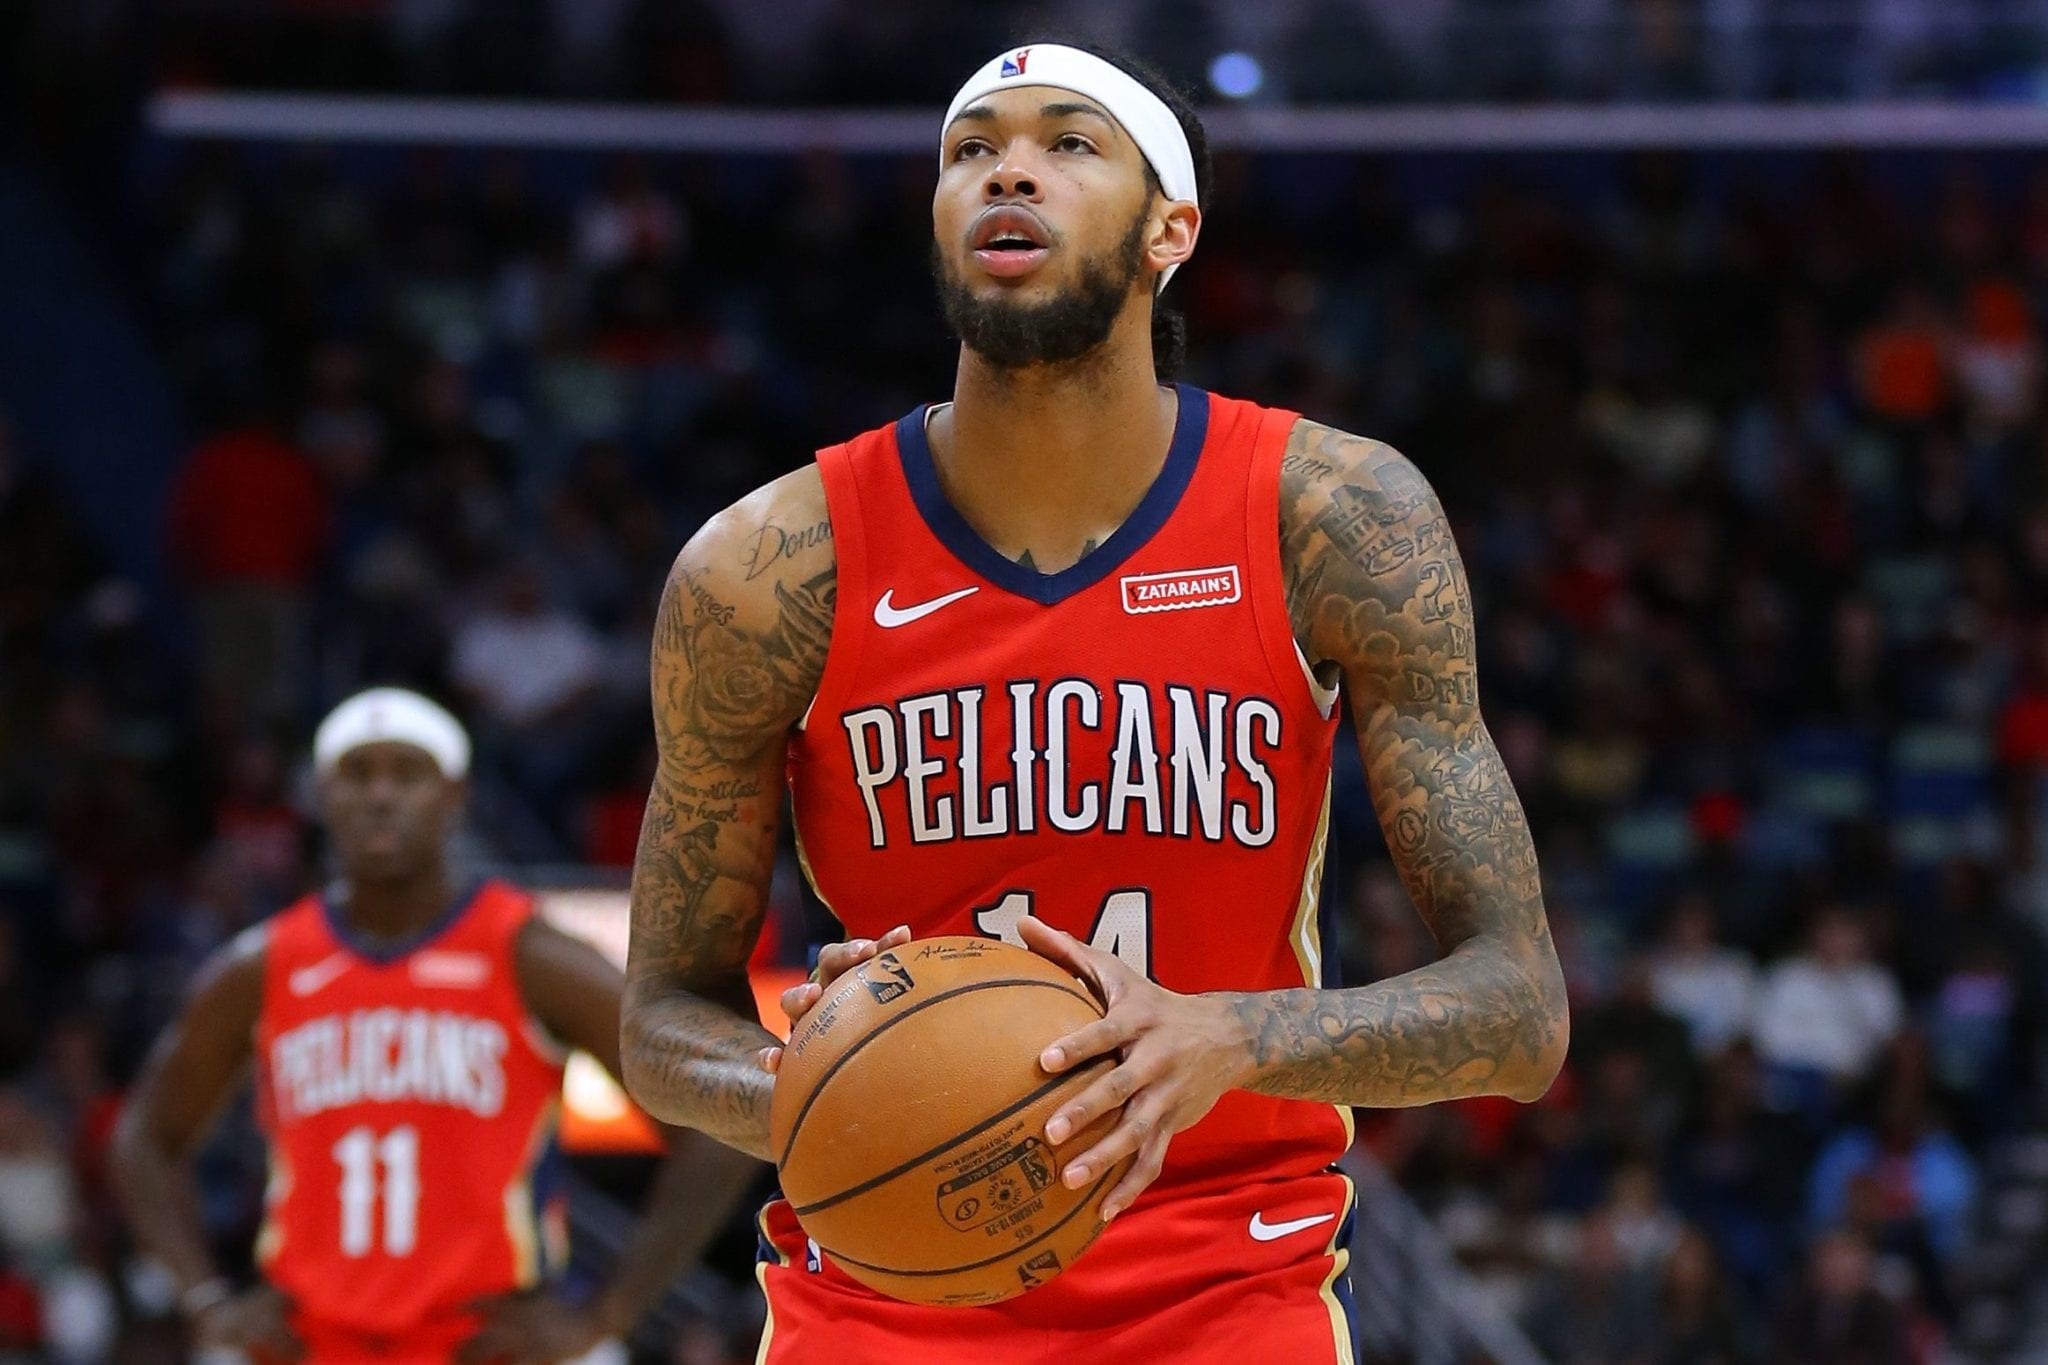 Pelicans' Brandon Ingram Wins NBA's Most Improved Player